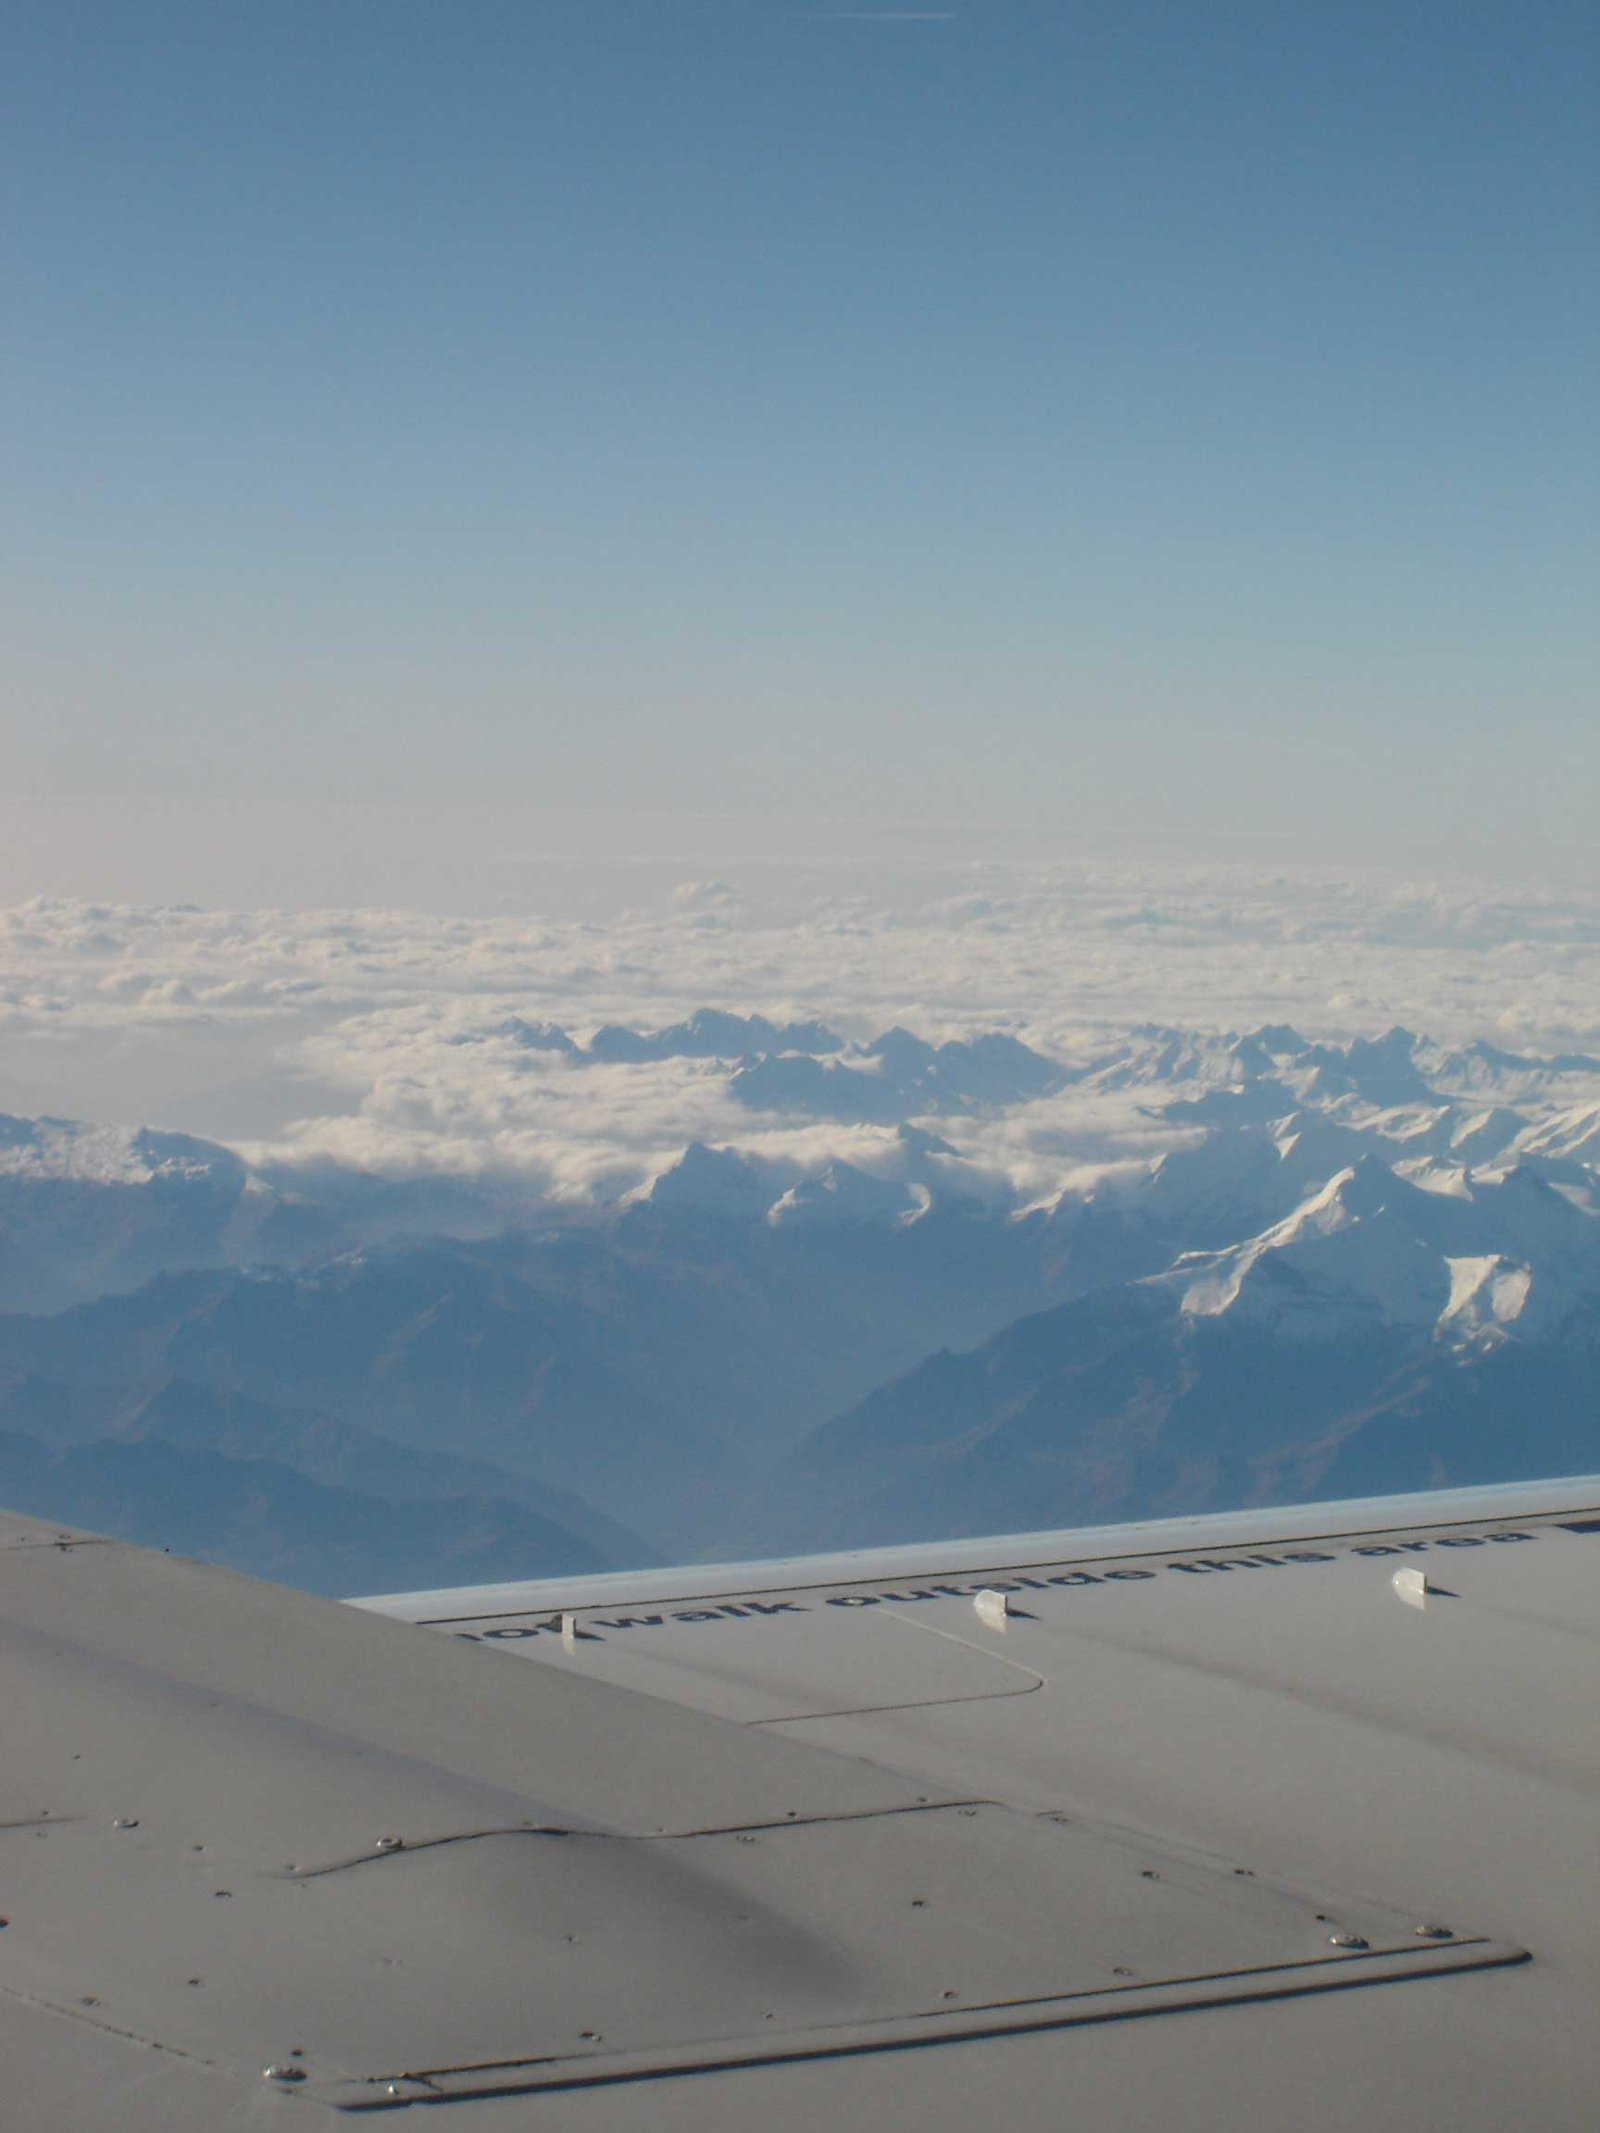 Between Munich and Sofia